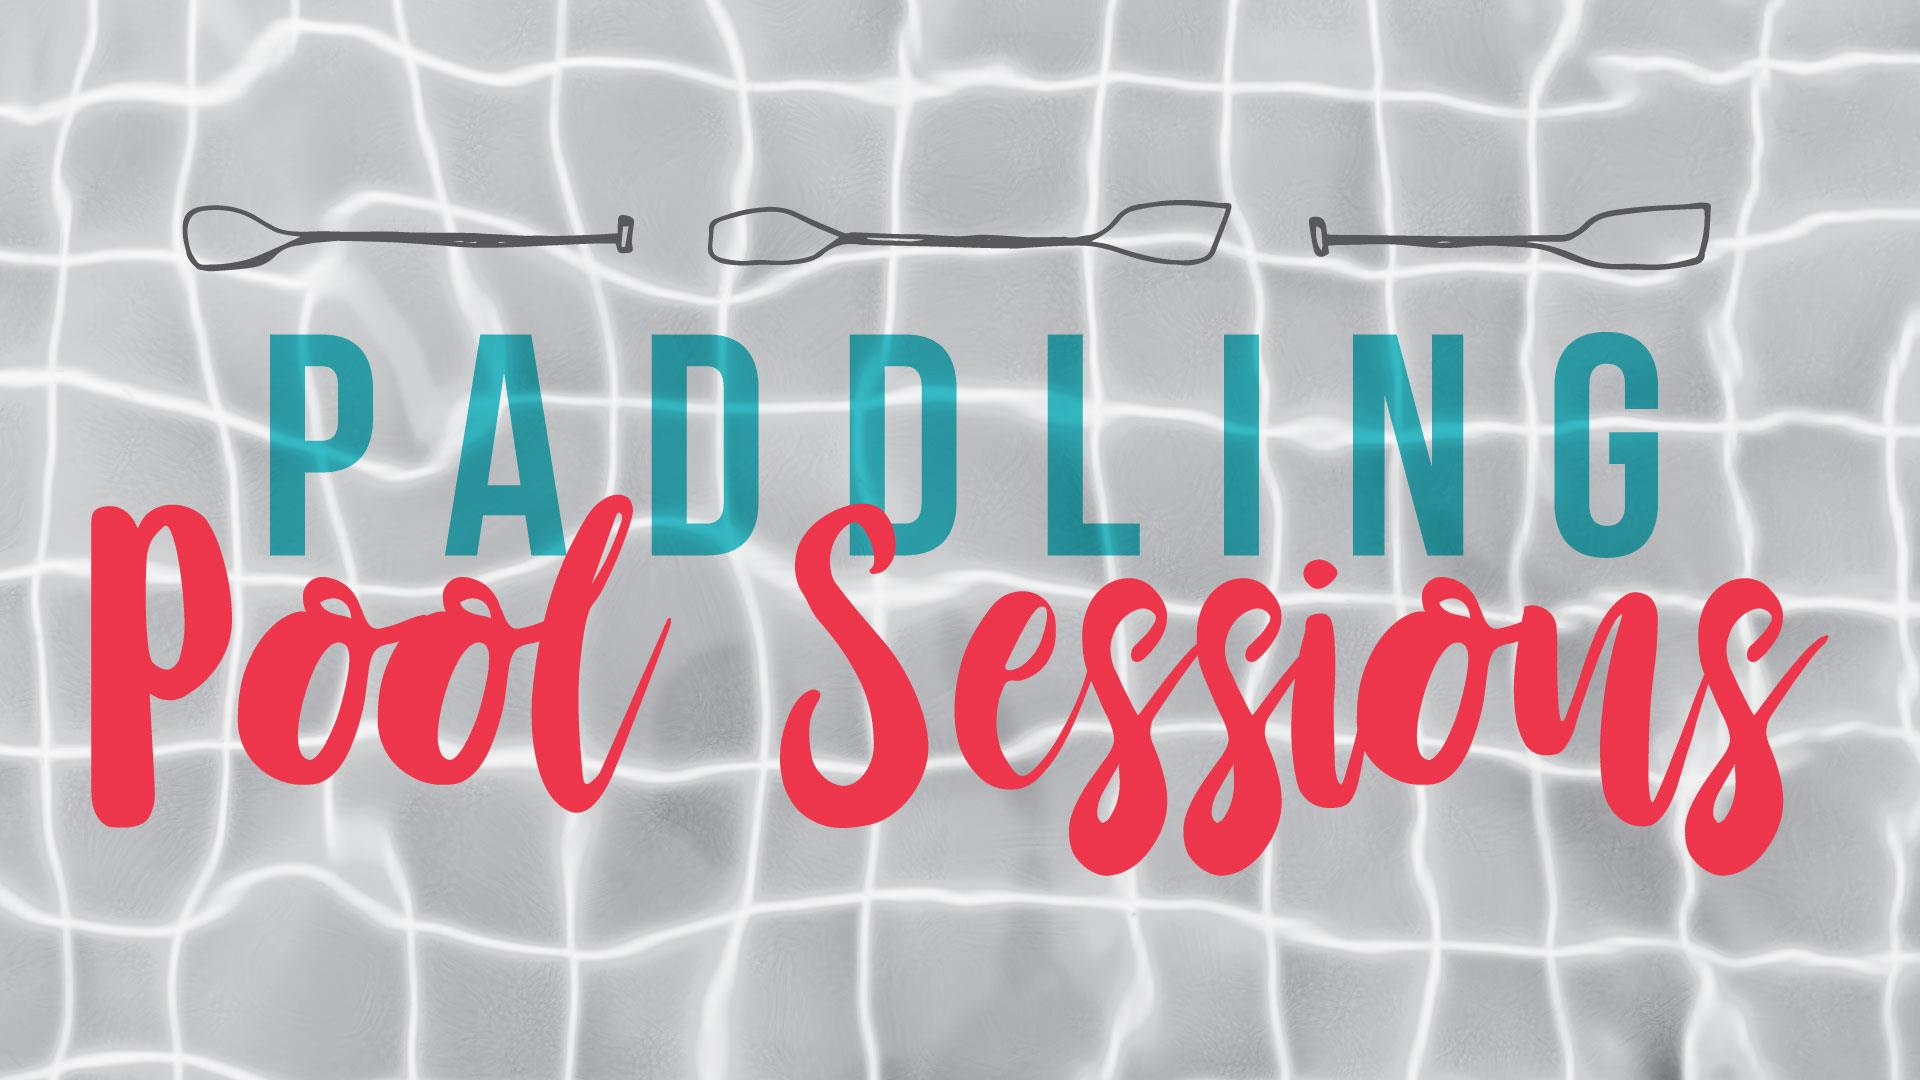 CANCELED - Paddling Pool Sessions @ Revelstoke Aquatic Centre